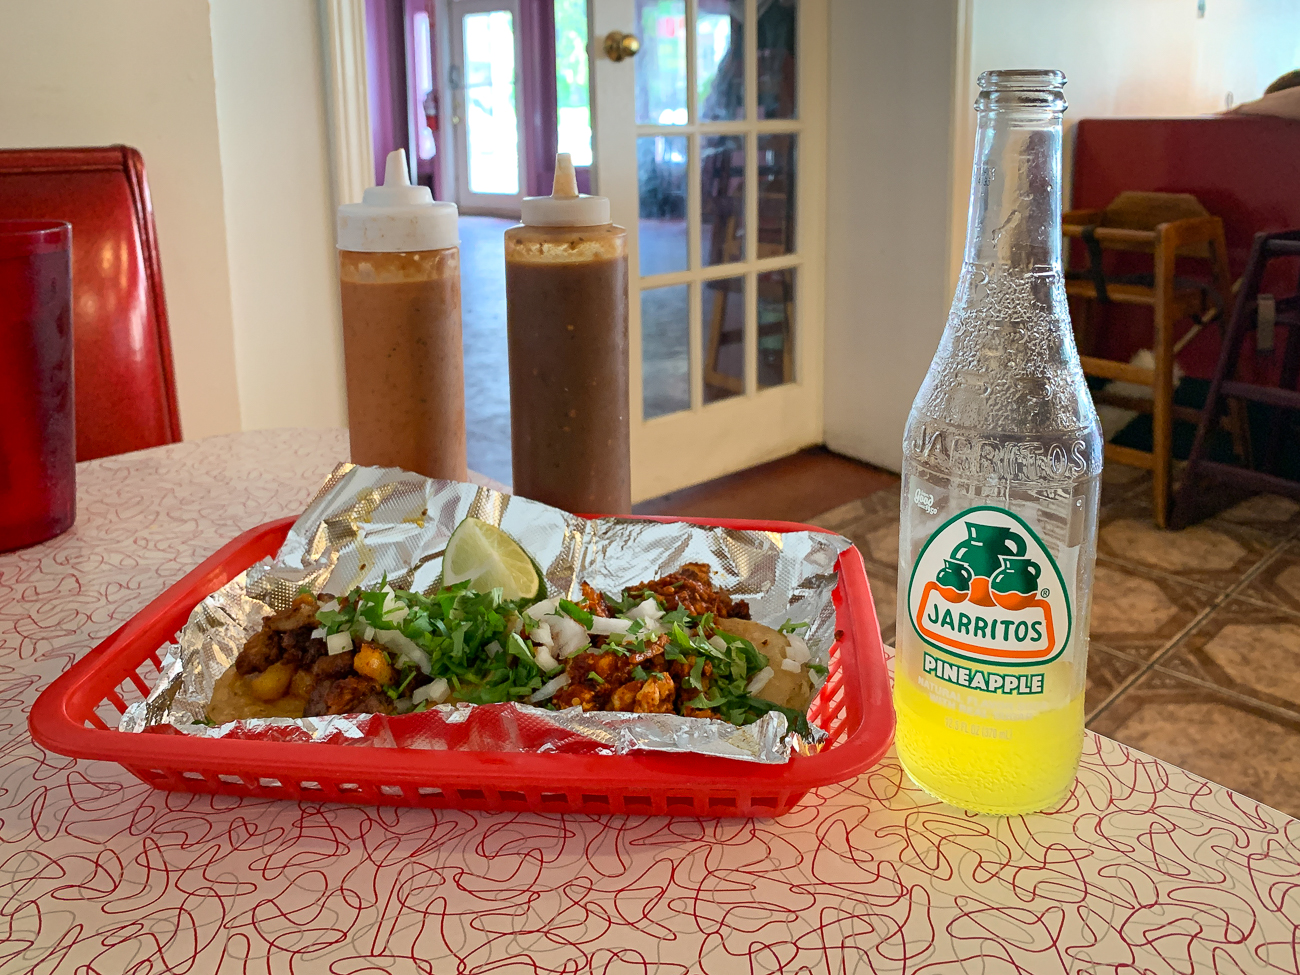 PLACE: Taqueria San Marcos / ADDRESS: 5201 Carthage Avenue (Norwood) / DESCRIPTION: When I walk into Taqueria San Marcos, I feel like I'm stepping back into a simpler time. I love the old diner décor and, of course, a fridge full of Jarritos. I had the al pastor, tripa, and chorizo tacos. All three were delicious and unique in their own right. They have plenty of meat options, from the conventional (chicken or beef) to the meat you can't get at those more well-known places (like beef tongue and beef gut). / Image: Shawn Braley // Published: 5.28.19